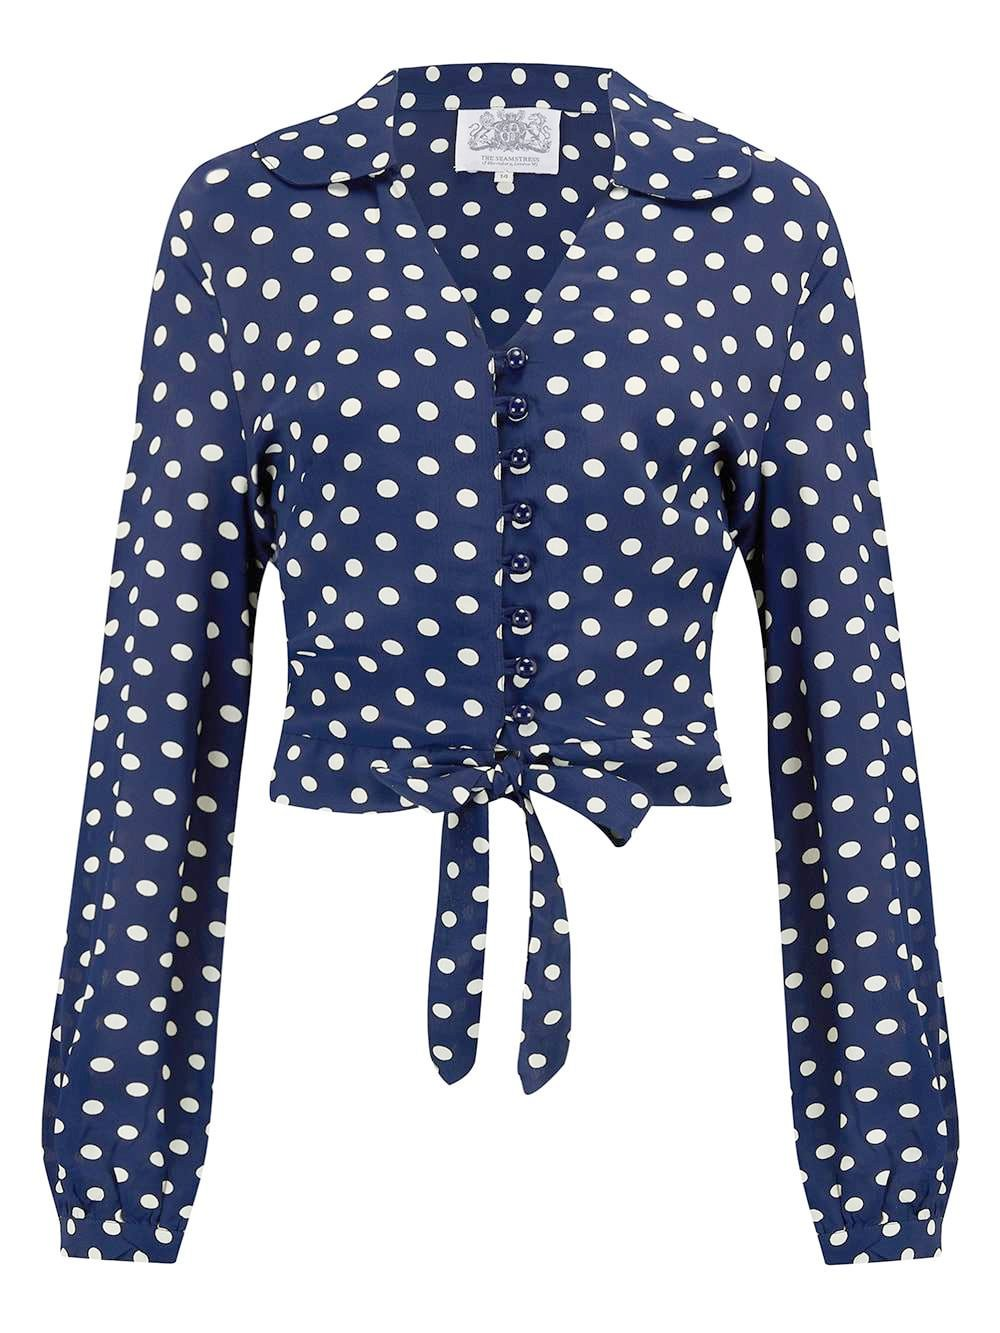 """Clarice"" Blouse in Blue with Polka Dot Sot Print by The Seamstress Of Bloomsbury, Classic 1940s Vintage Inspired Style"